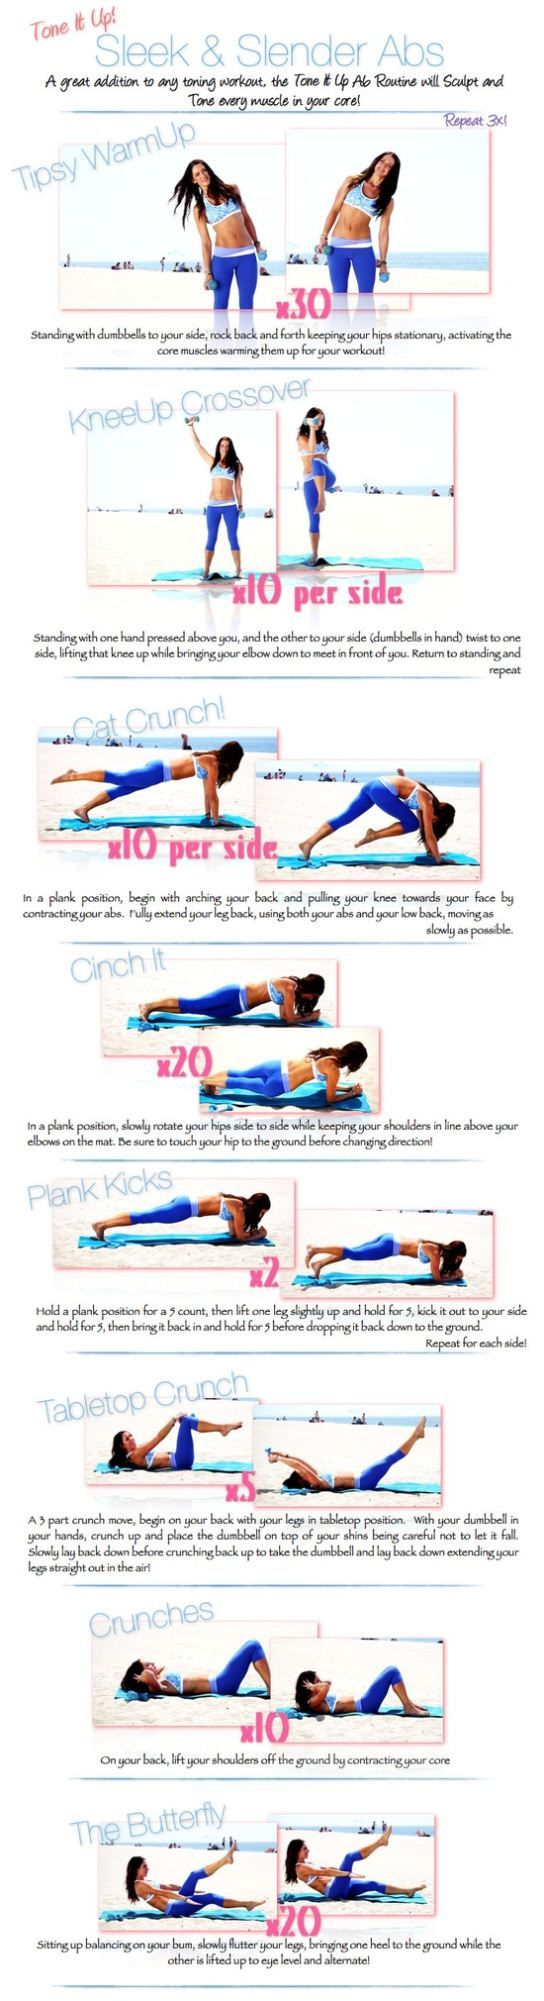 Tone It Up Sleek & Slender Ab Workout. I have really weak abs, so I'll definitely use a lighter dumbbell next time. Fives are maybe better-suited to the overhead stuff.